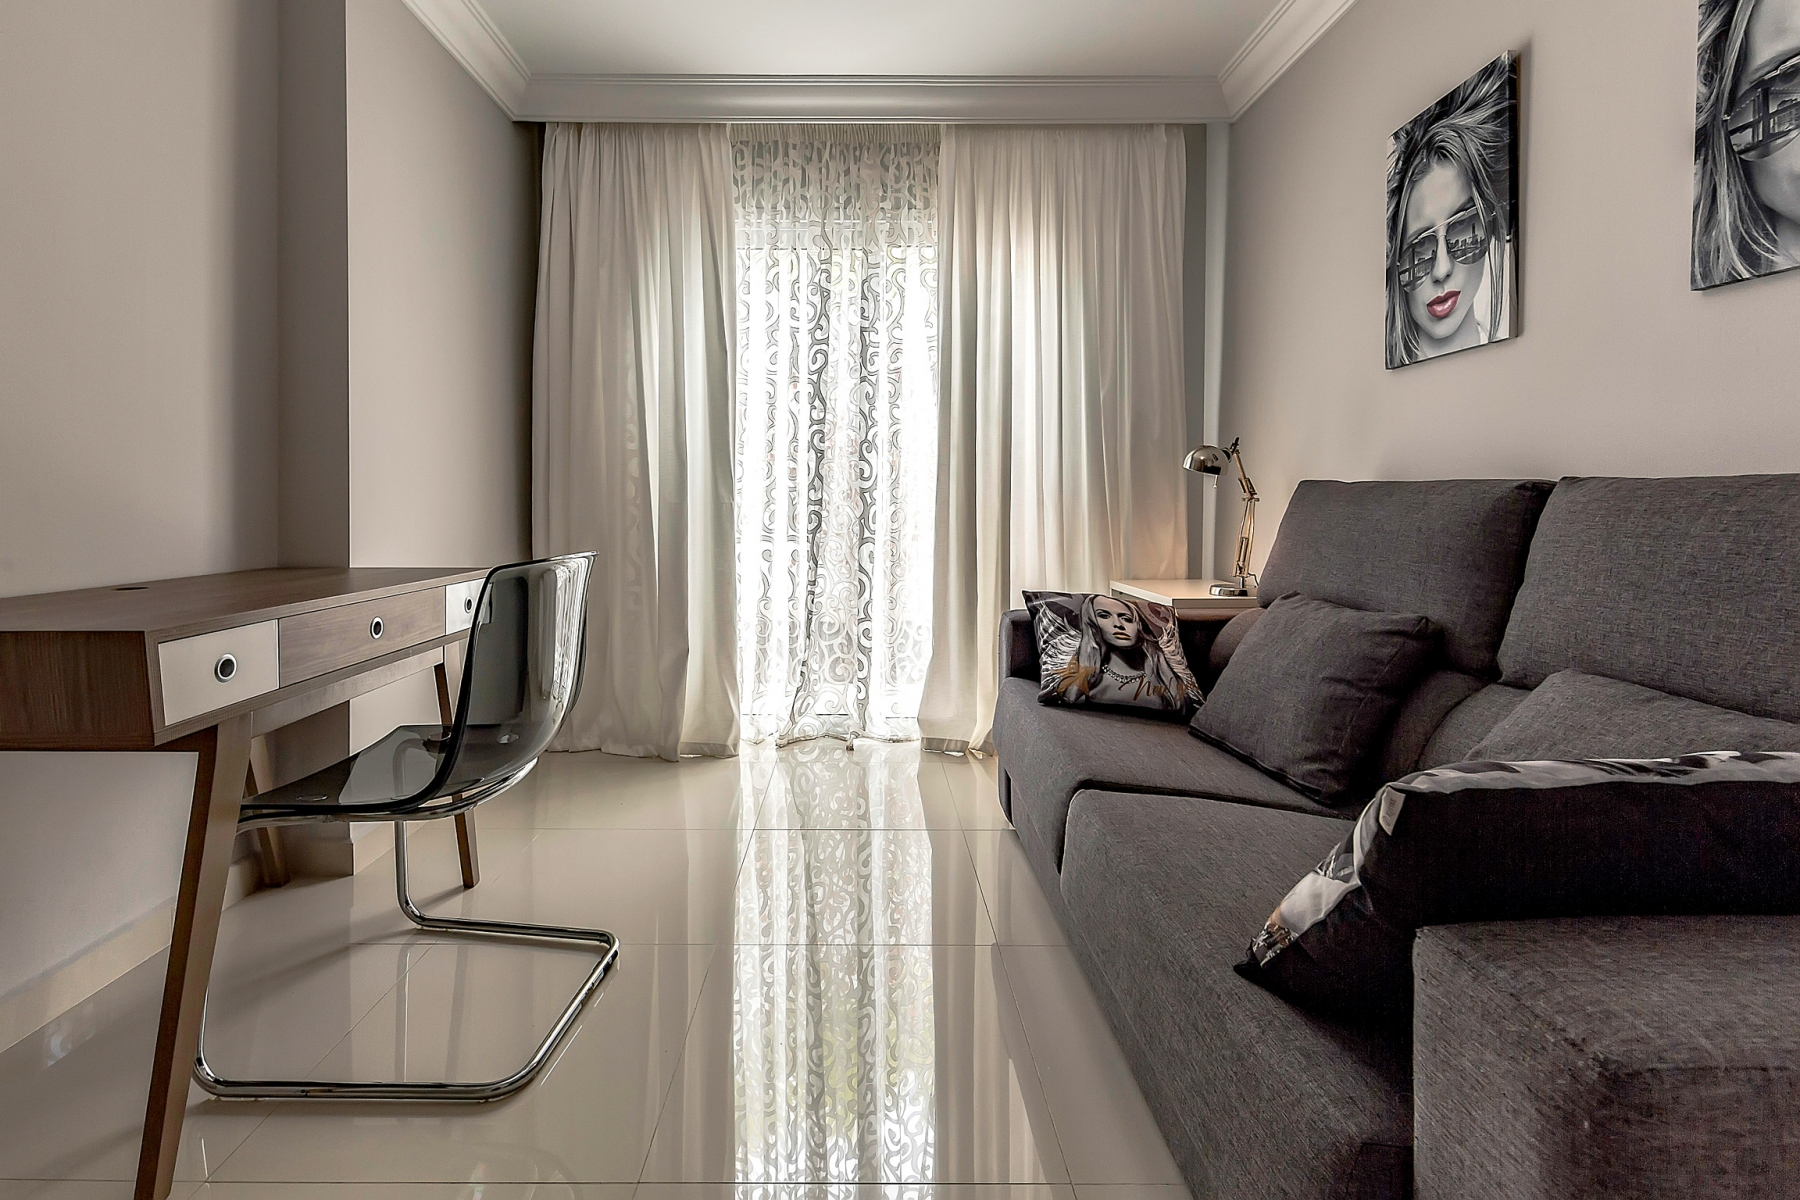 Properties for Sale in Tenerife, Canary Islands, Spain   SylkWayStar Real Estate. Luxury villa in the fashionable area of the south of the island of Tenerife – Madroñal.. Image-22777